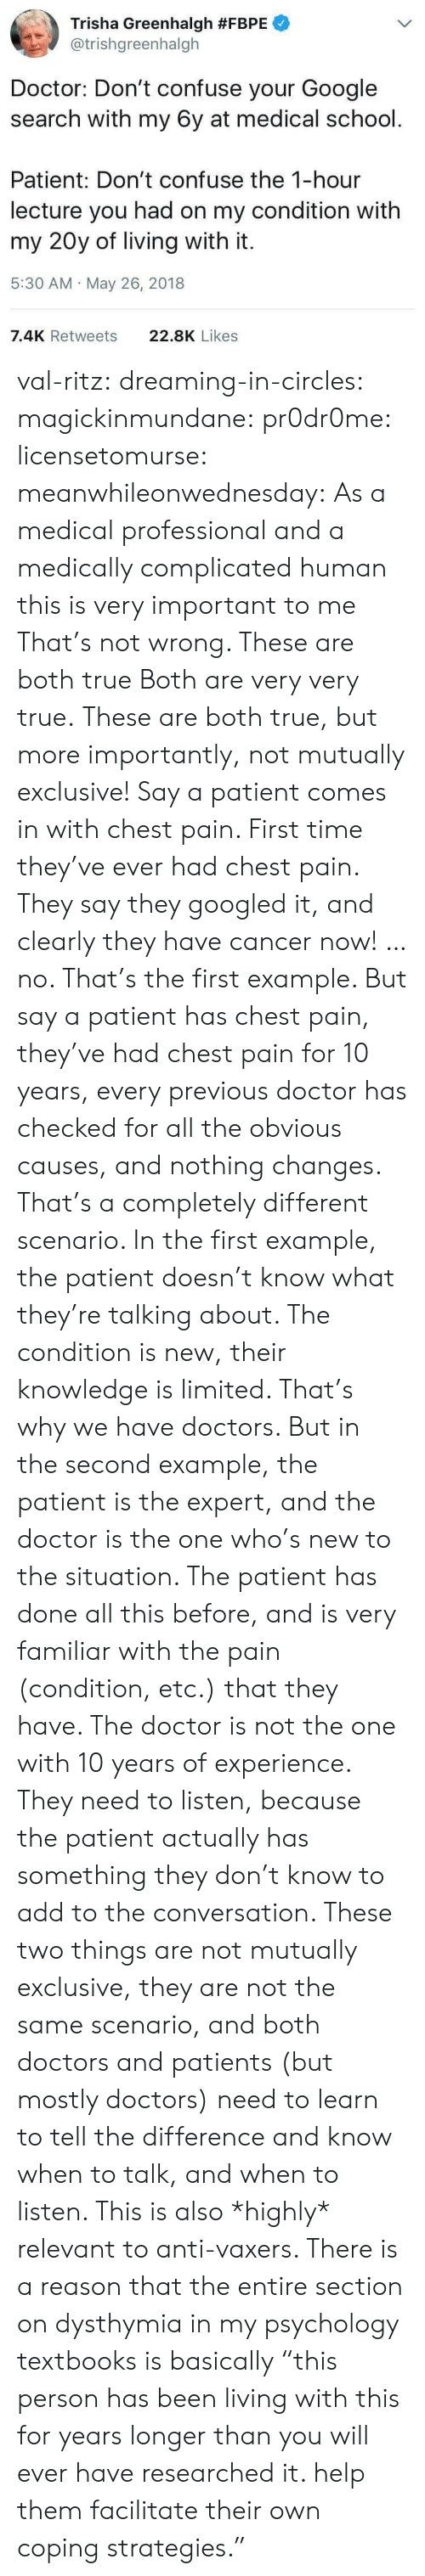 """Circles: Trisha Greenhalgh #FBPE  @trishgreenhalgh  Doctor: Don't confuse your Google  search with my 6y at medical school.  Patient: Don't confuse the 1-hour  lecture you had on my condition with  my 20y of living with it.  5:30 AM May 26, 2018  7.4K Retweets  22.8K Likes val-ritz:  dreaming-in-circles:  magickinmundane:  pr0dr0me:   licensetomurse:   meanwhileonwednesday: As a medical professional and a medically complicated human this is very important to me That's not wrong.    These are both true   Both are very very true.   These are both true, but more importantly, not mutually exclusive!  Say a patient comes in with chest pain. First time they've ever had chest pain. They say they googled it, and clearly they have cancer now! …no. That's the first example.  But say a patient has chest pain, they've had chest pain for 10 years, every previous doctor has checked for all the obvious causes, and nothing changes.  That's a completely different scenario. In the first example, the patient doesn't know what they're talking about. The condition is new, their knowledge is limited. That's why we have doctors. But in the second example, the patient is the expert, and the doctor is the one who's new to the situation. The patient has done all this before, and is very familiar with the pain (condition, etc.) that they have. The doctor is not the one with 10 years of experience. They need to listen, because the patient actually has something they don't know to add to the conversation.  These two things are not mutually exclusive, they are not the same scenario, and both doctors and patients (but mostly doctors) need to learn to tell the difference and know when to talk, and when to listen.  This is also *highly* relevant to anti-vaxers.   There is a reason that the entire section on dysthymia in my psychology textbooks is basically """"this person has been living with this for years longer than you will ever have researched it. help them facilitate their own coping strategies."""